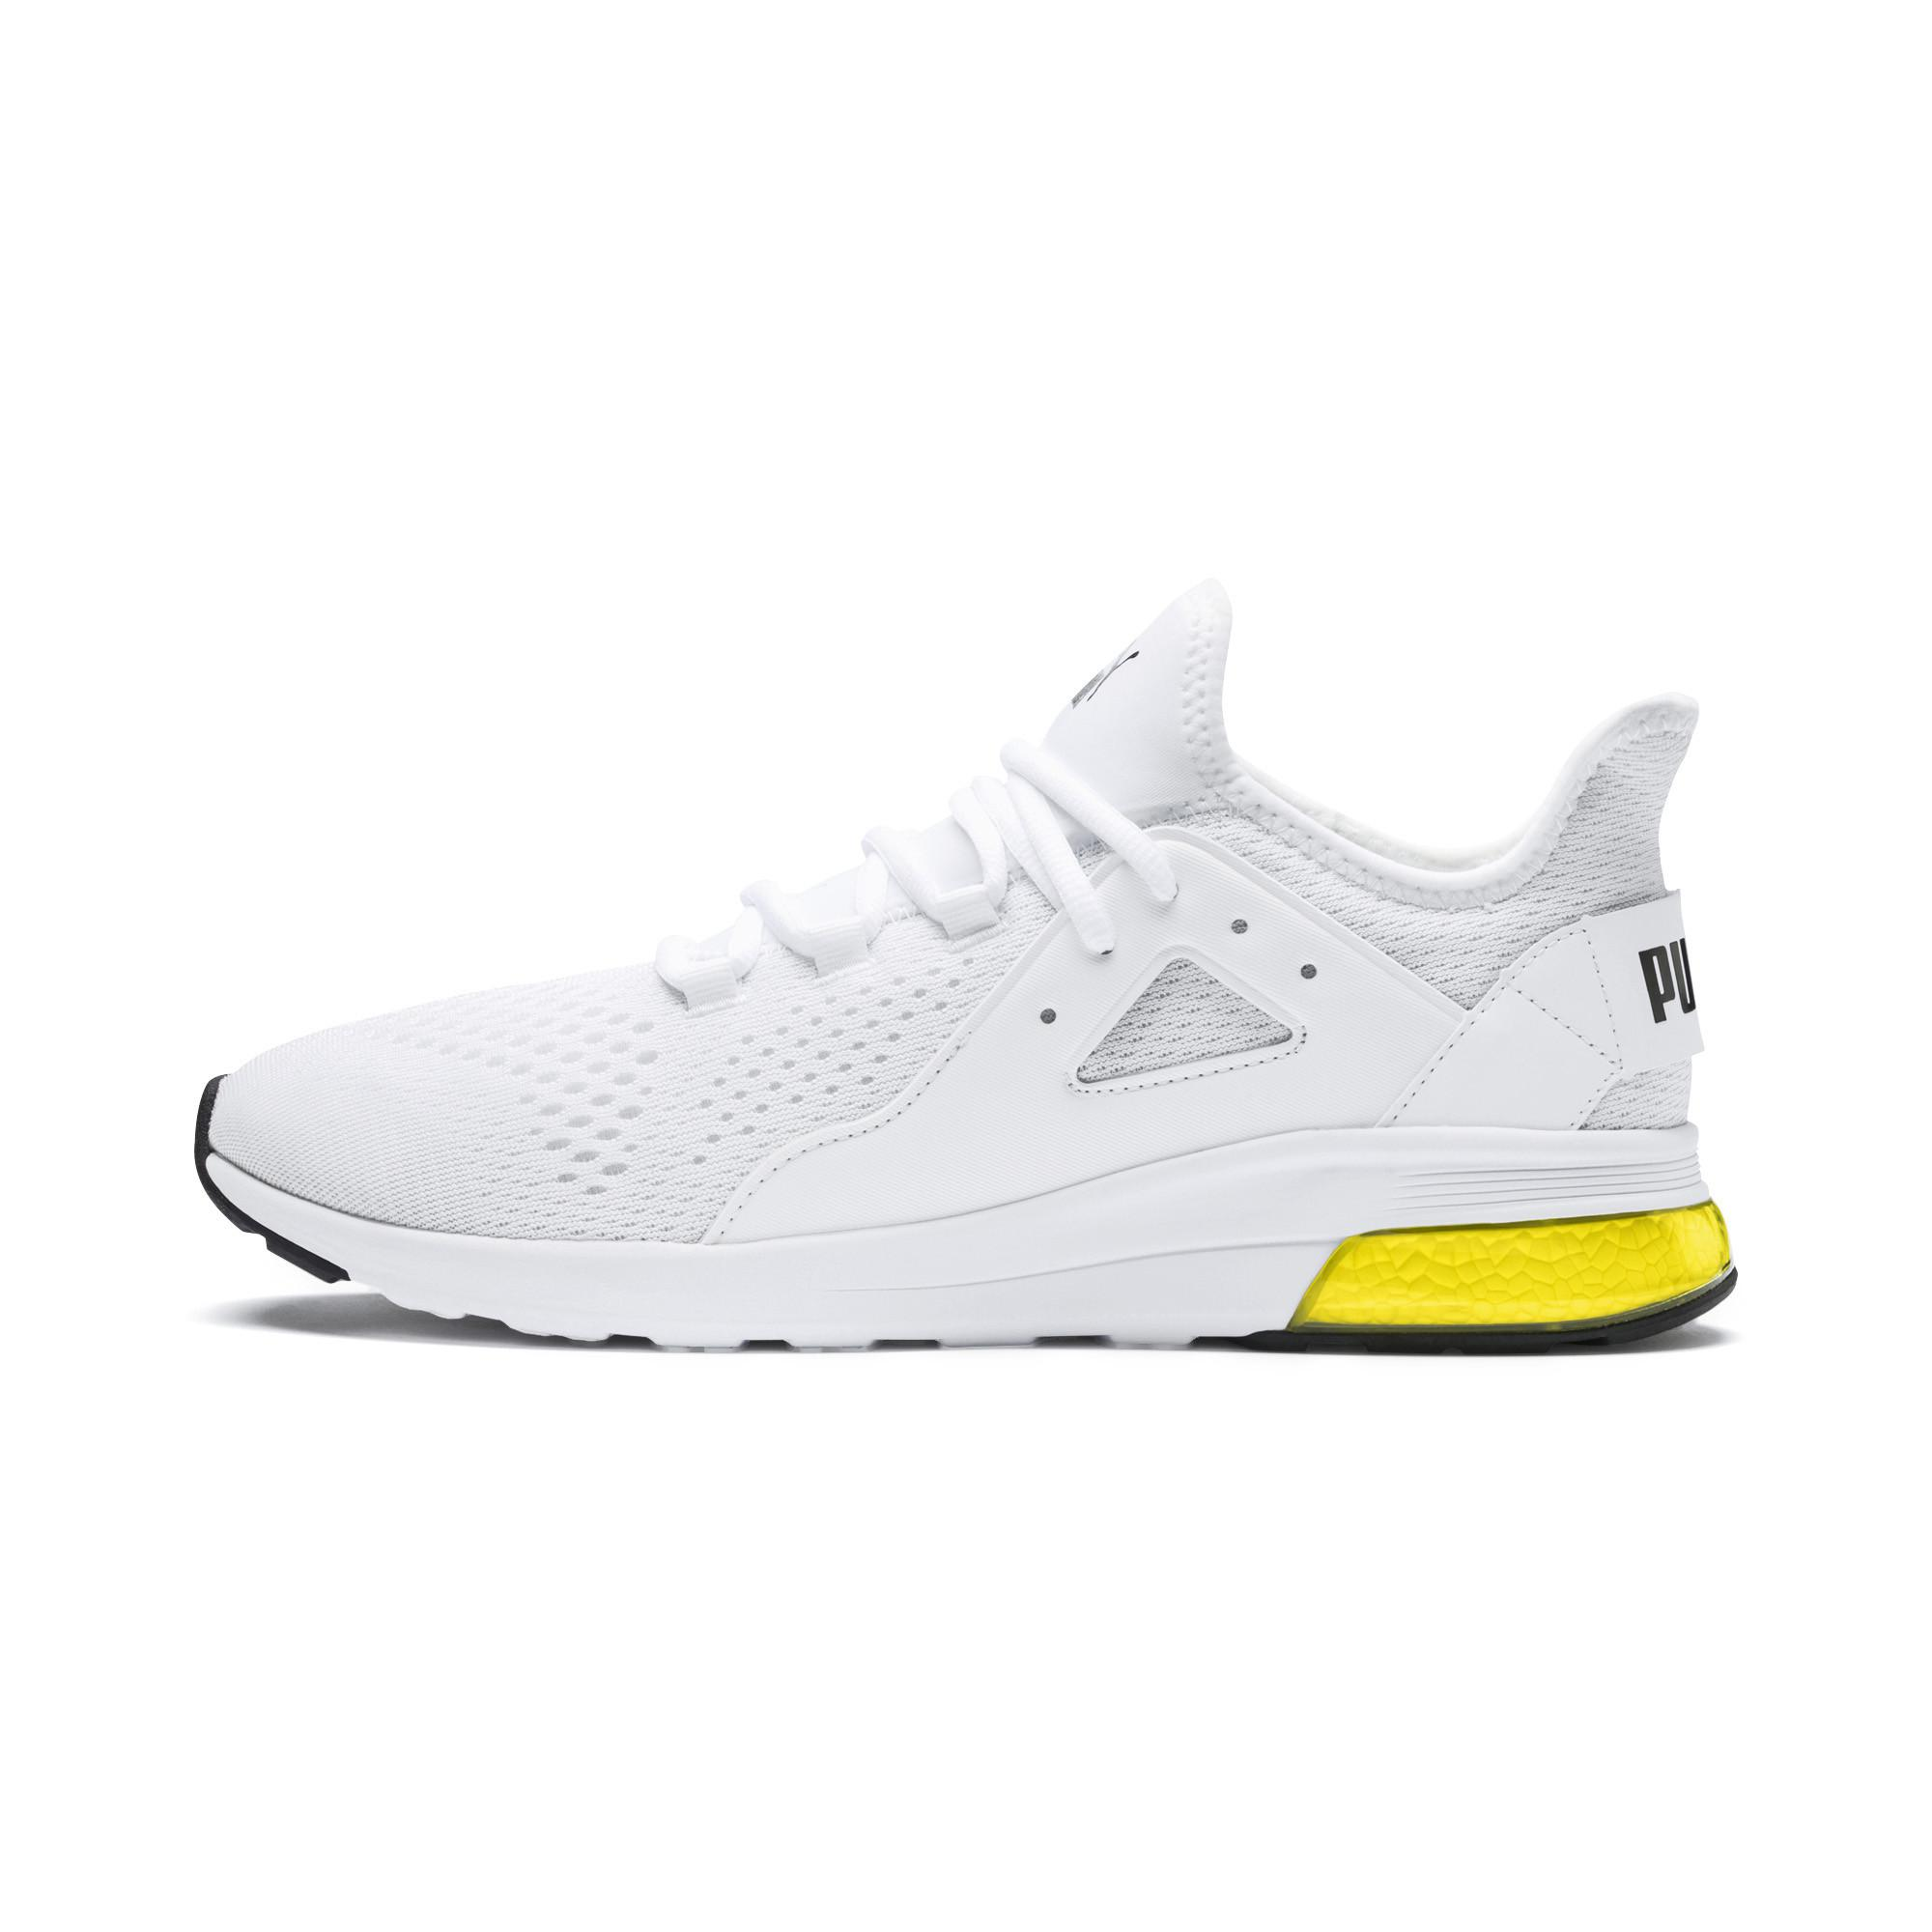 a7cade661d9a07 Lyst - PUMA Electron Street Eng Mesh in White for Men - Save 10%